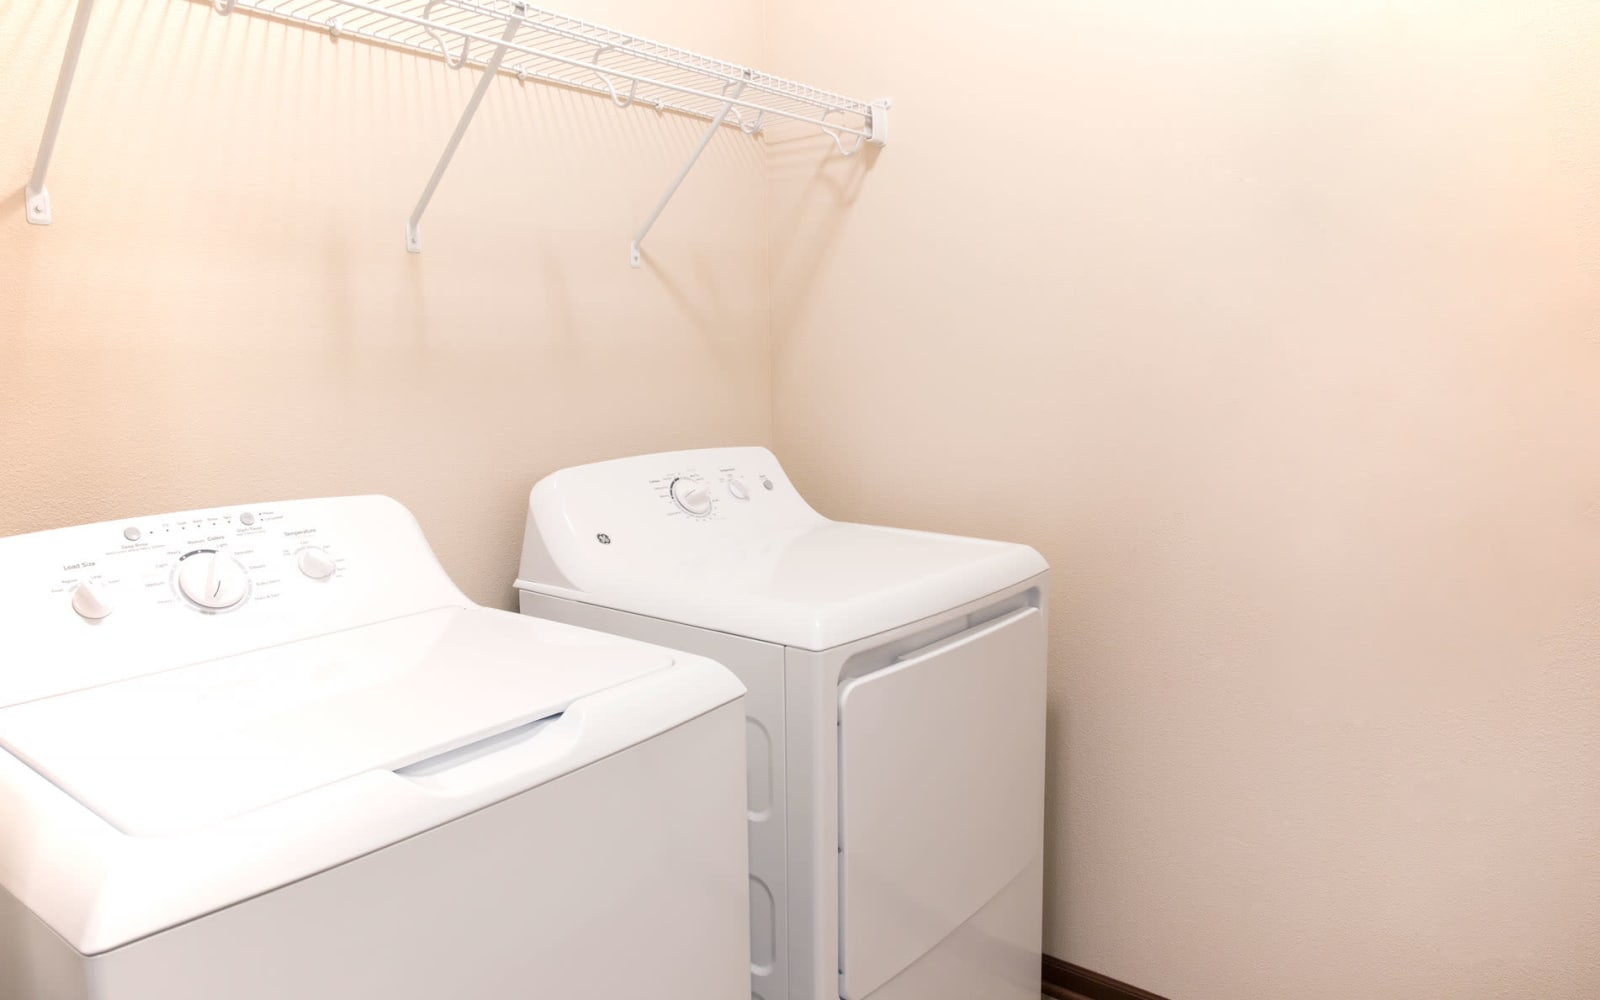 A full size washer and dryer in an apartment at Prairie Pointe Student Living in Ankeny, Iowa